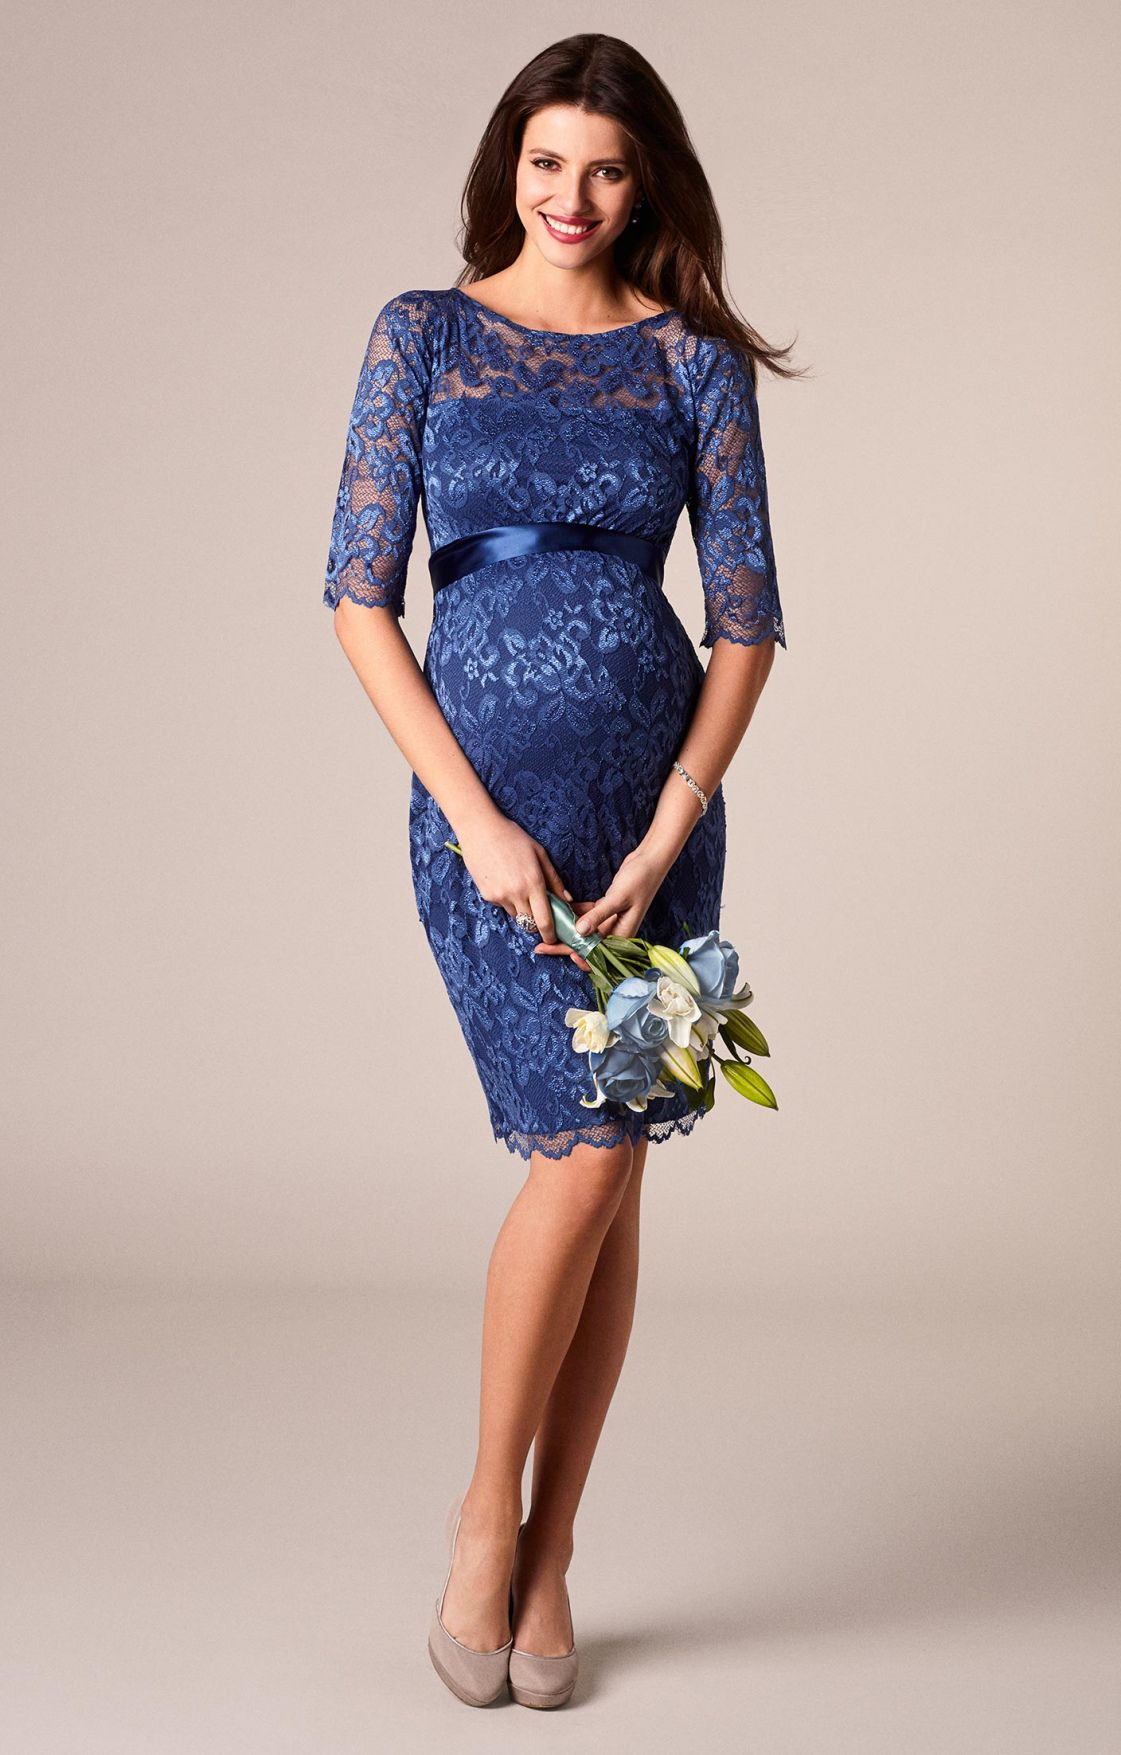 Guest at a wedding dress   Maternity Dresses for Weddings  Dresses for Guest at Wedding